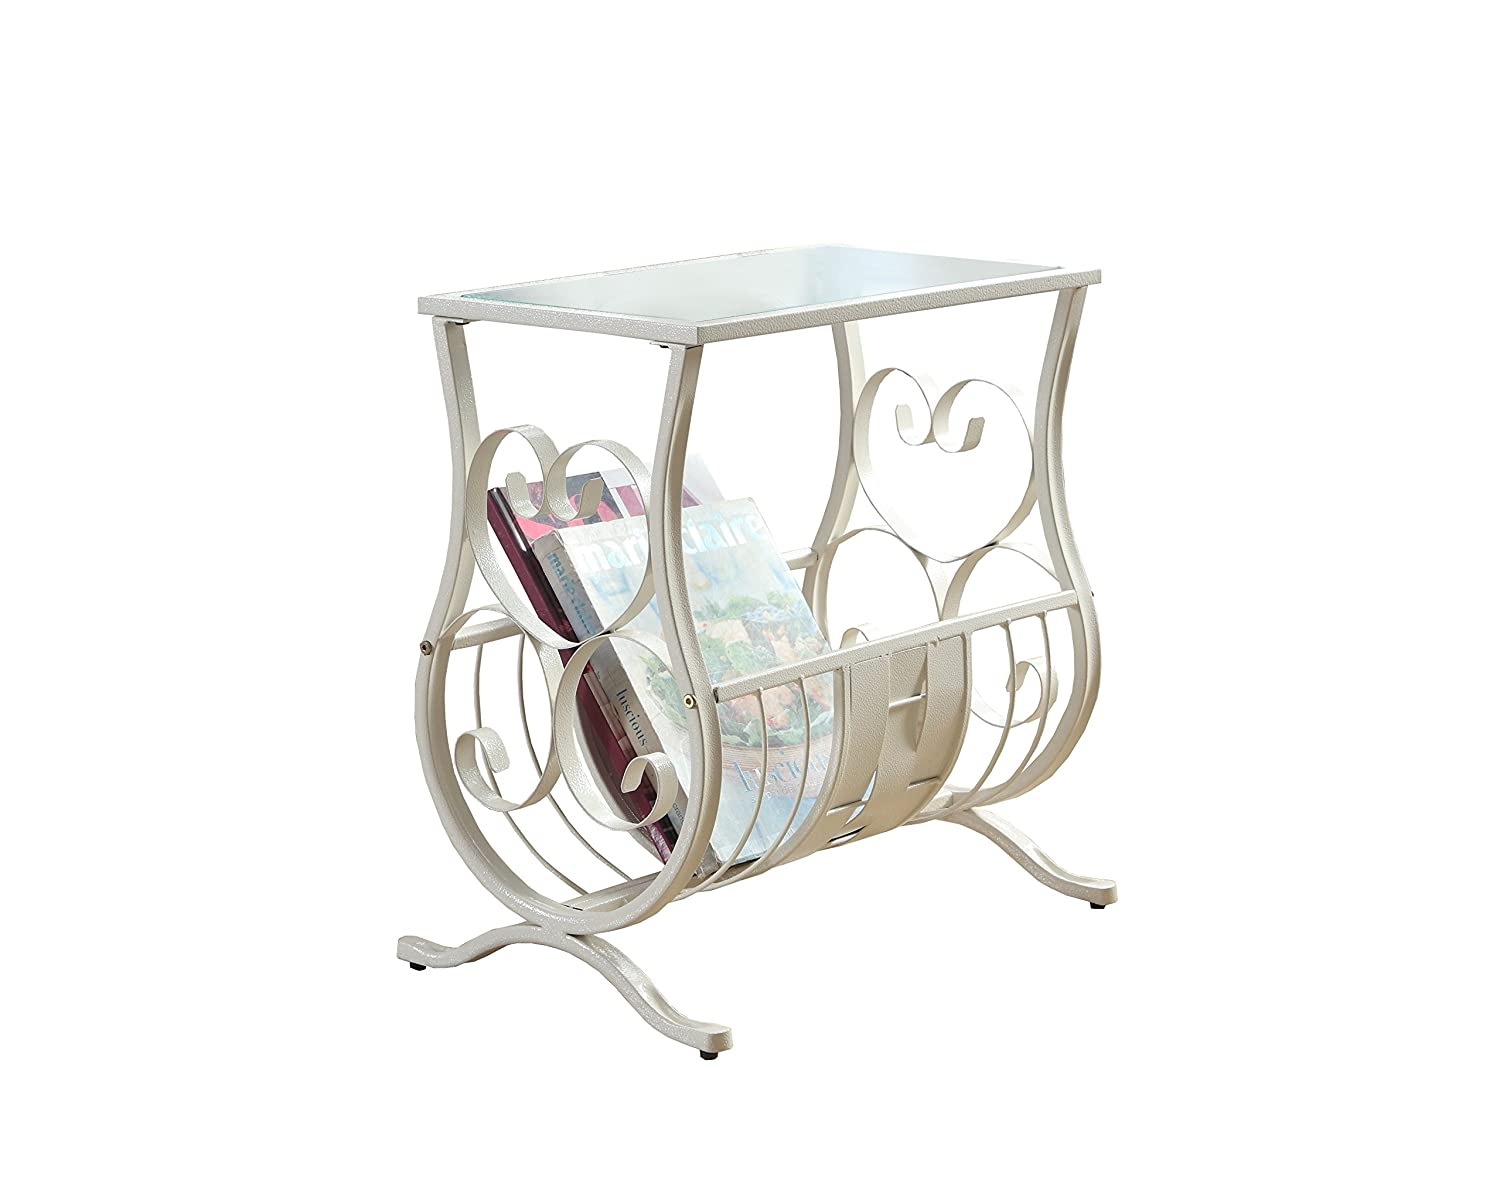 Monarch Specialties I 3312 Antique White Metal Magazine Table with Tempered Glass